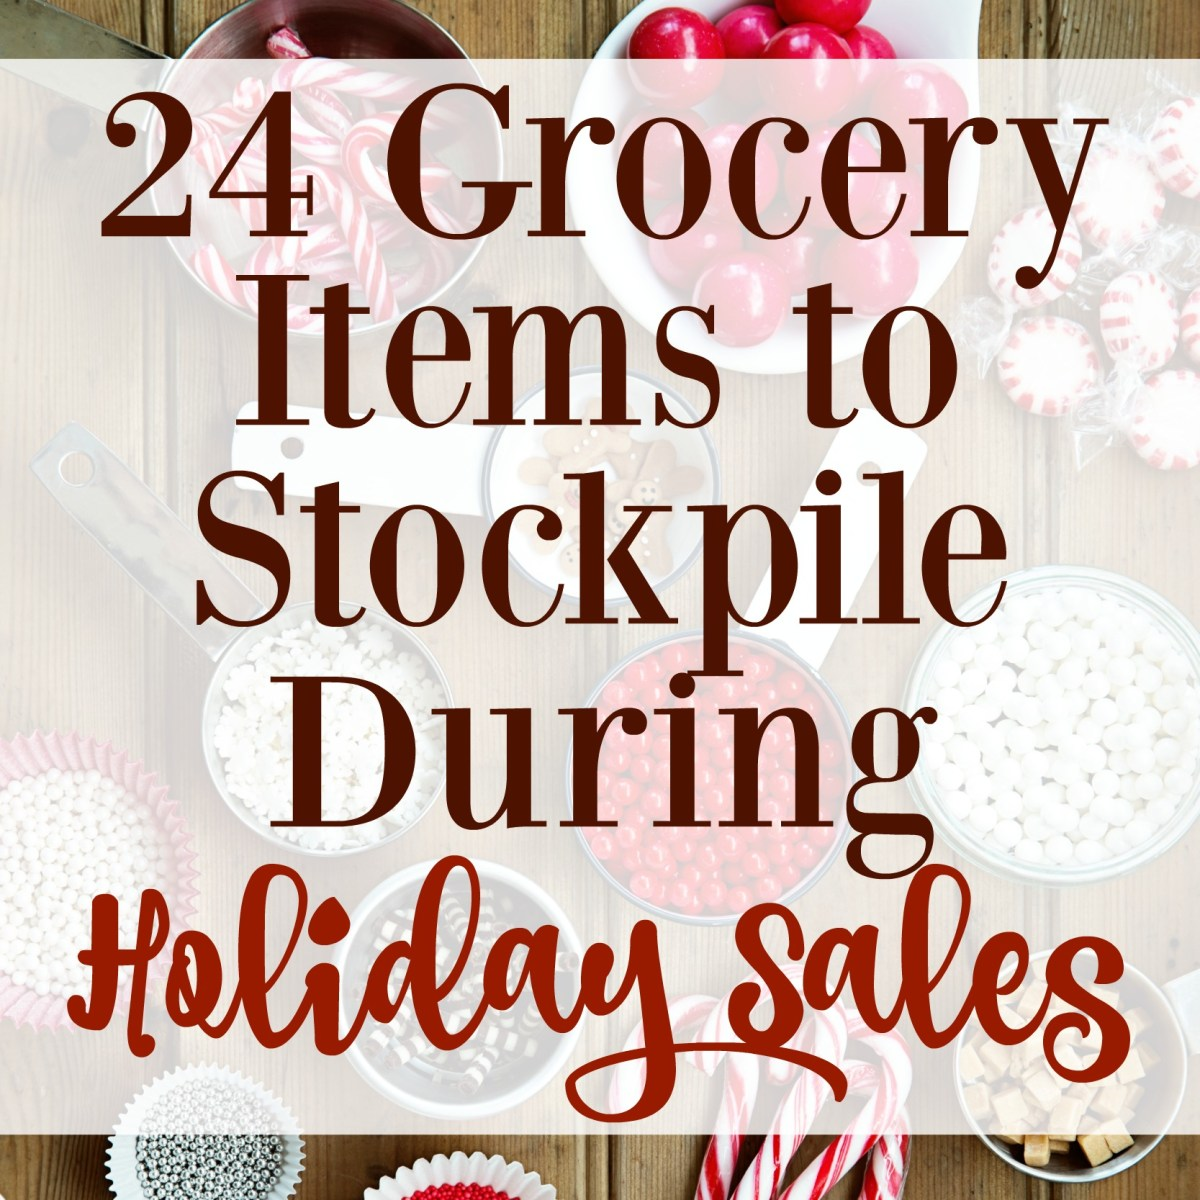 24 Grocery Items to Stockpile During Holiday Sales